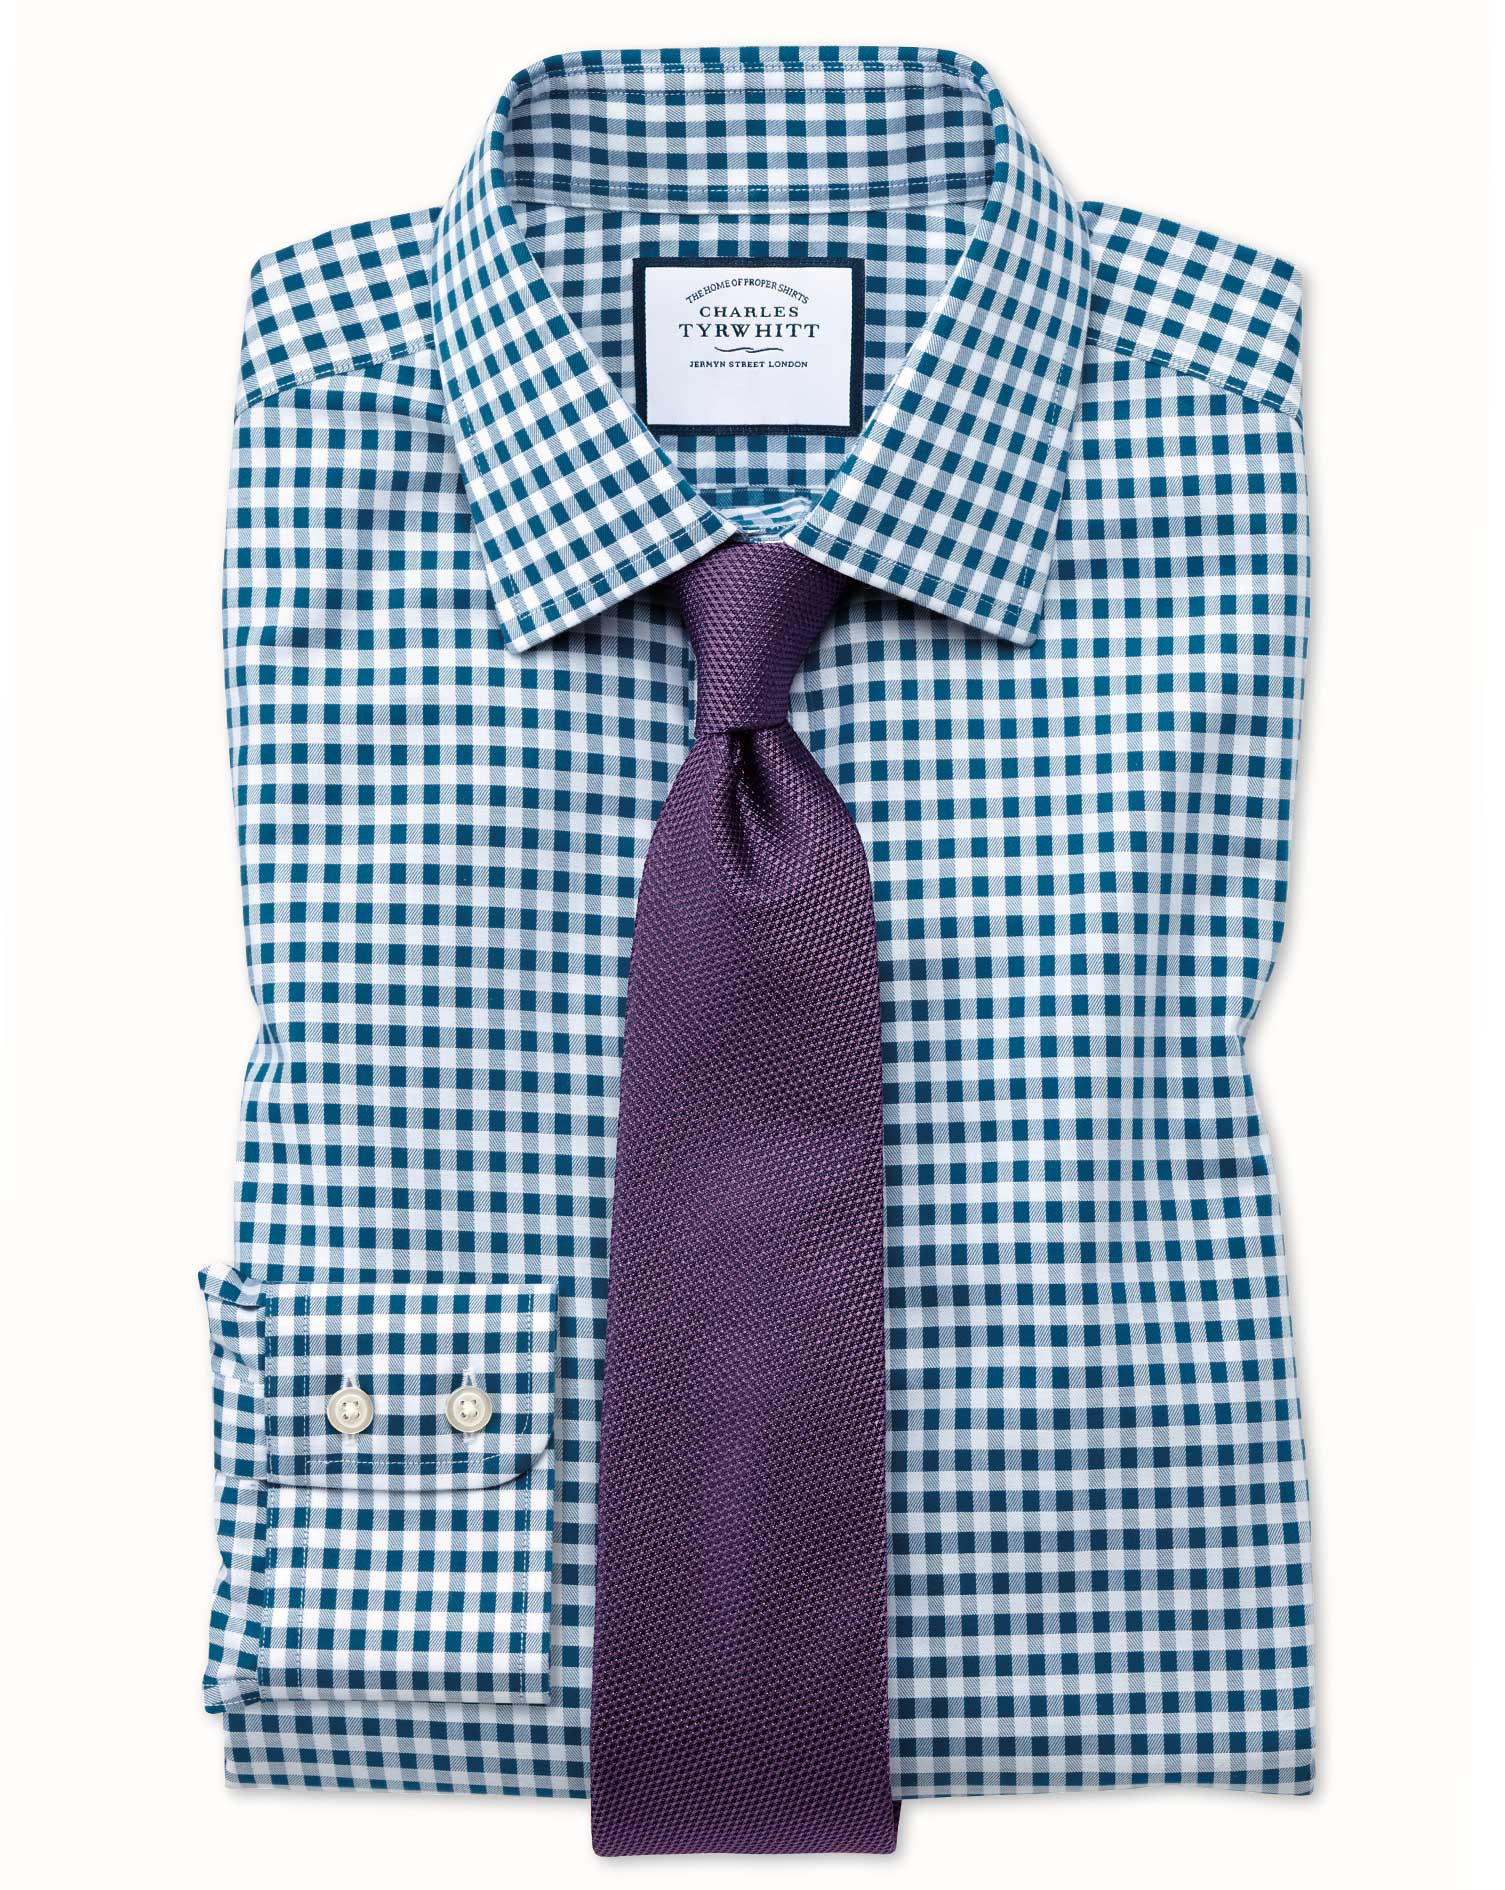 Extra Slim Fit Non-Iron Gingham Teal Cotton Formal Shirt Single Cuff Size 16/35 by Charles Tyrwhitt